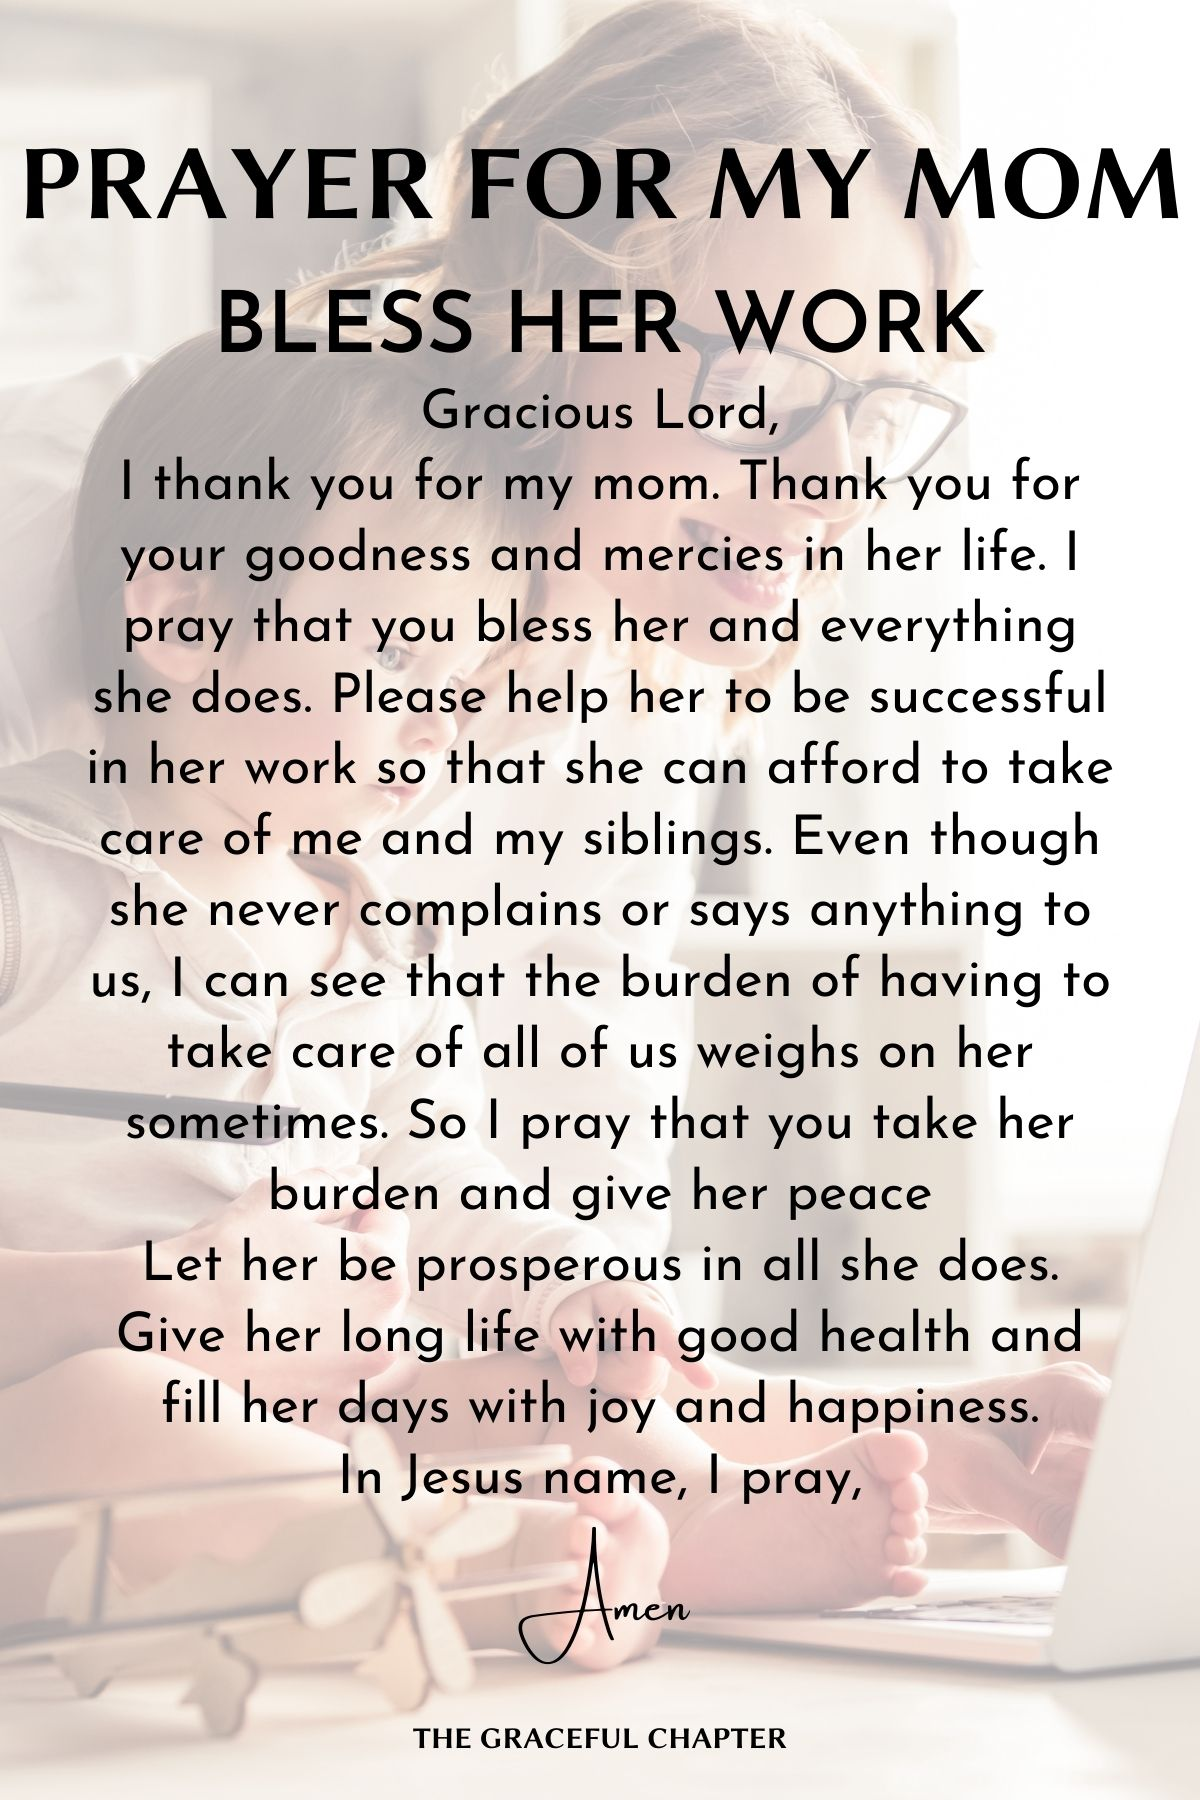 Prayers for my mom - Bless her work